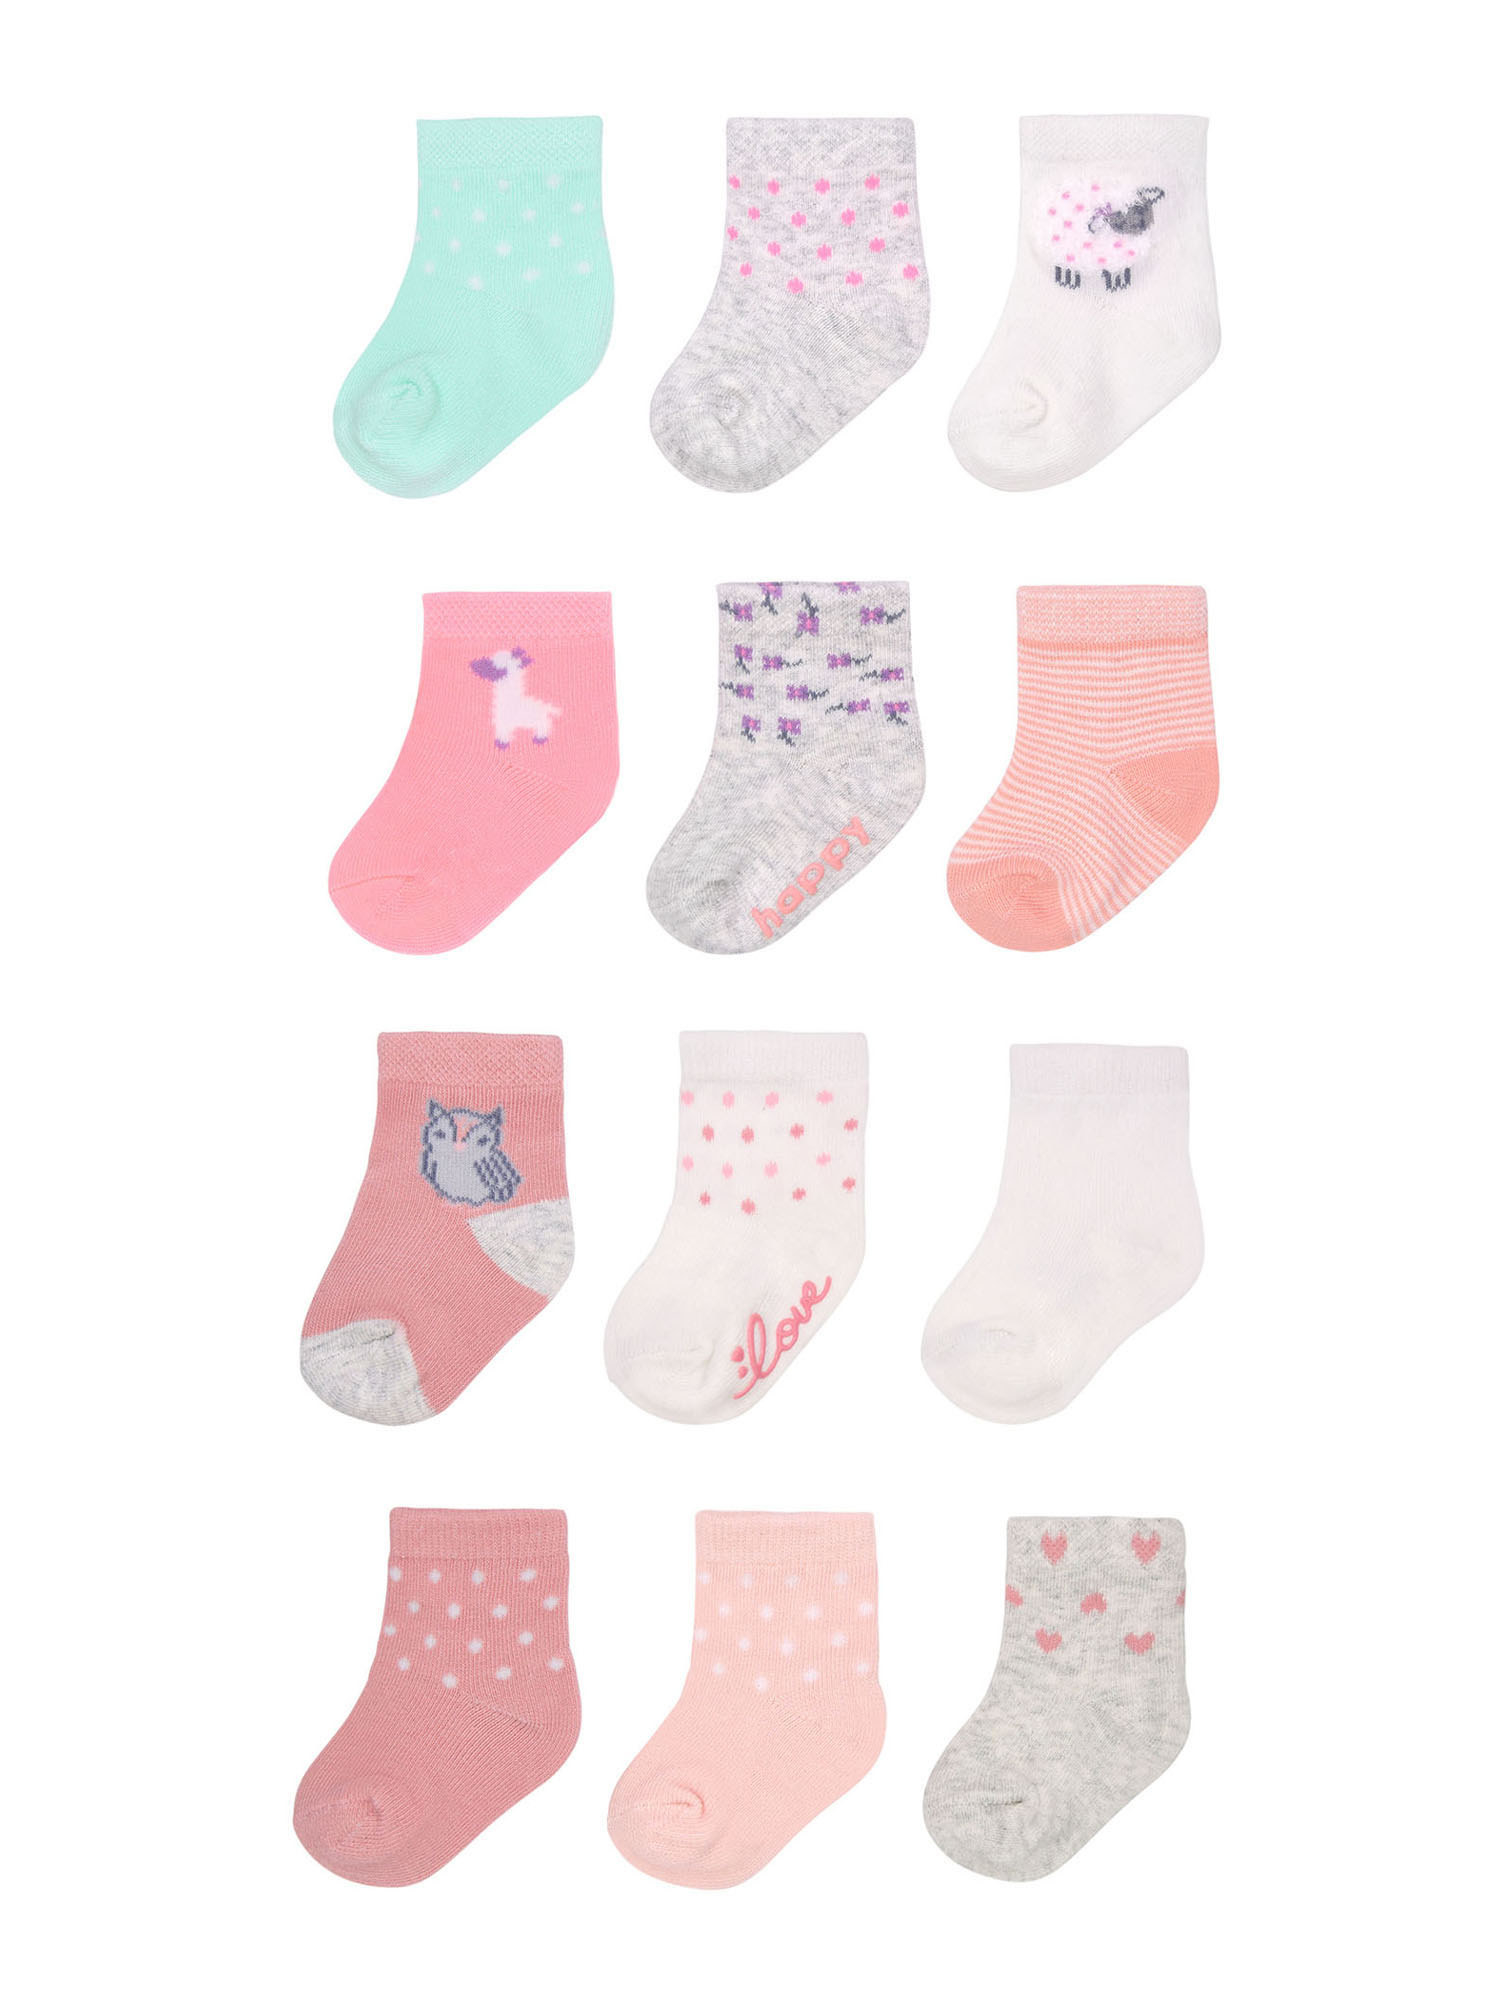 A set of pink, grey, and turquoise socks with various animal designs